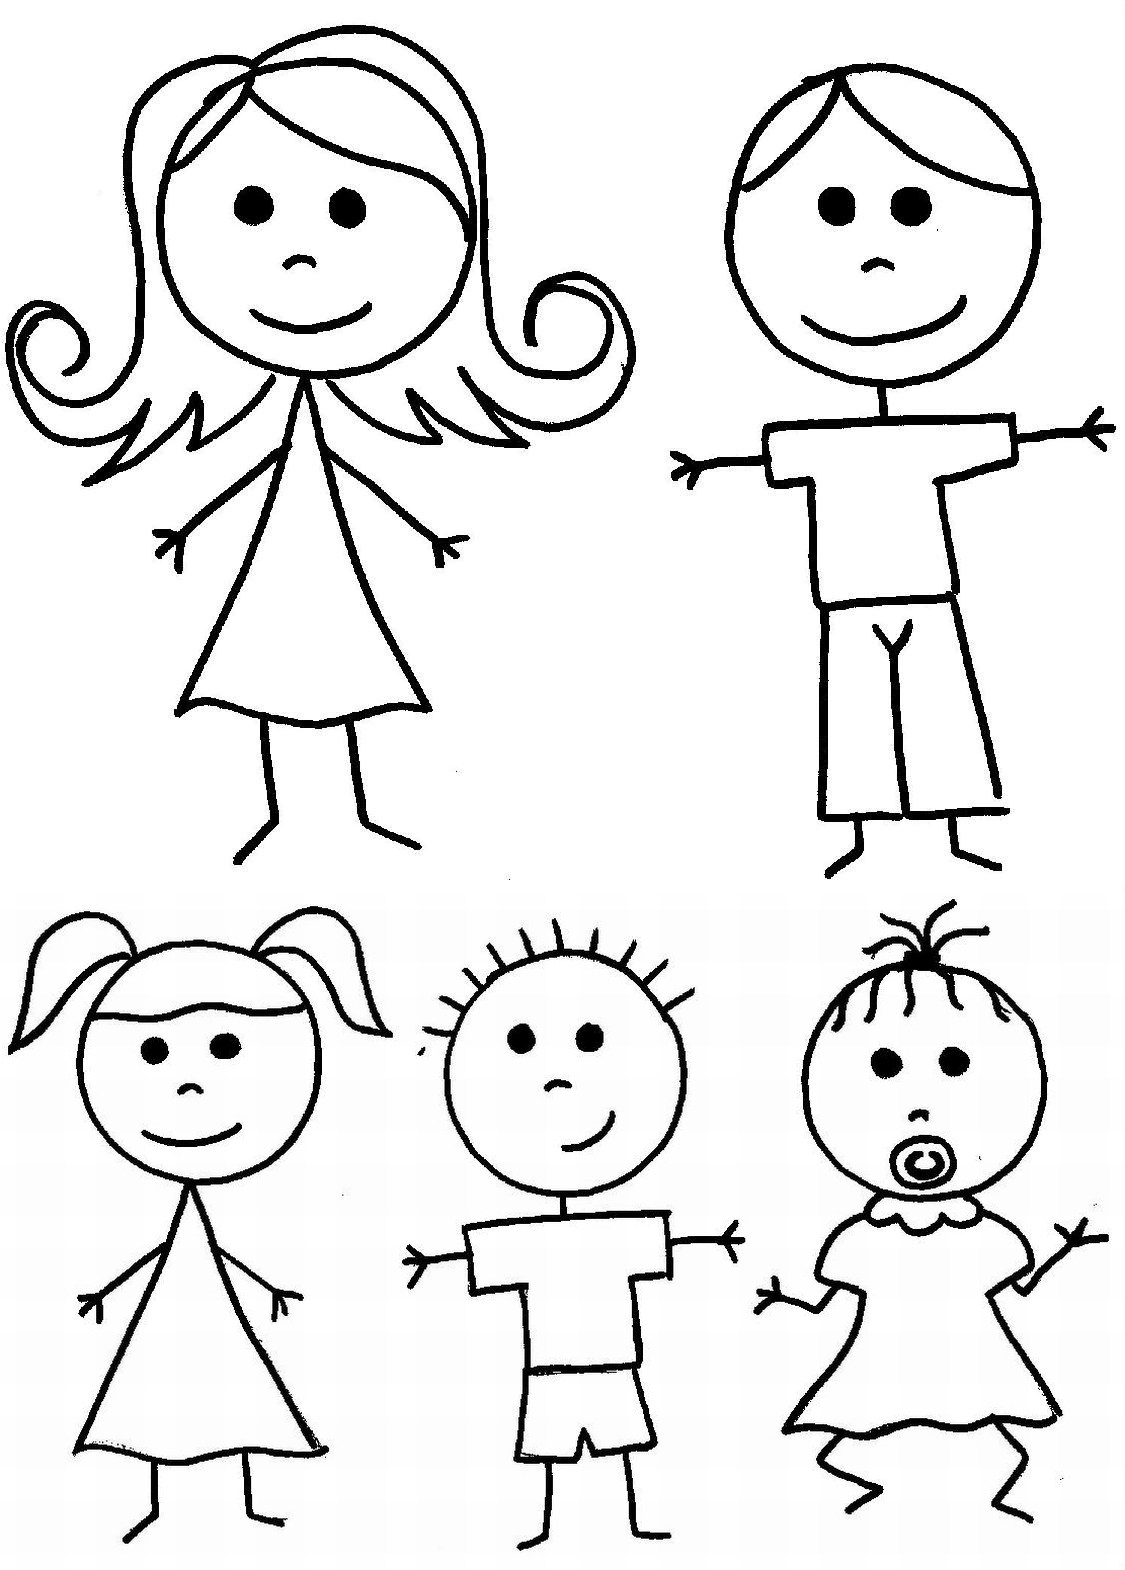 Stick People Coloring Pages At Getcolorings